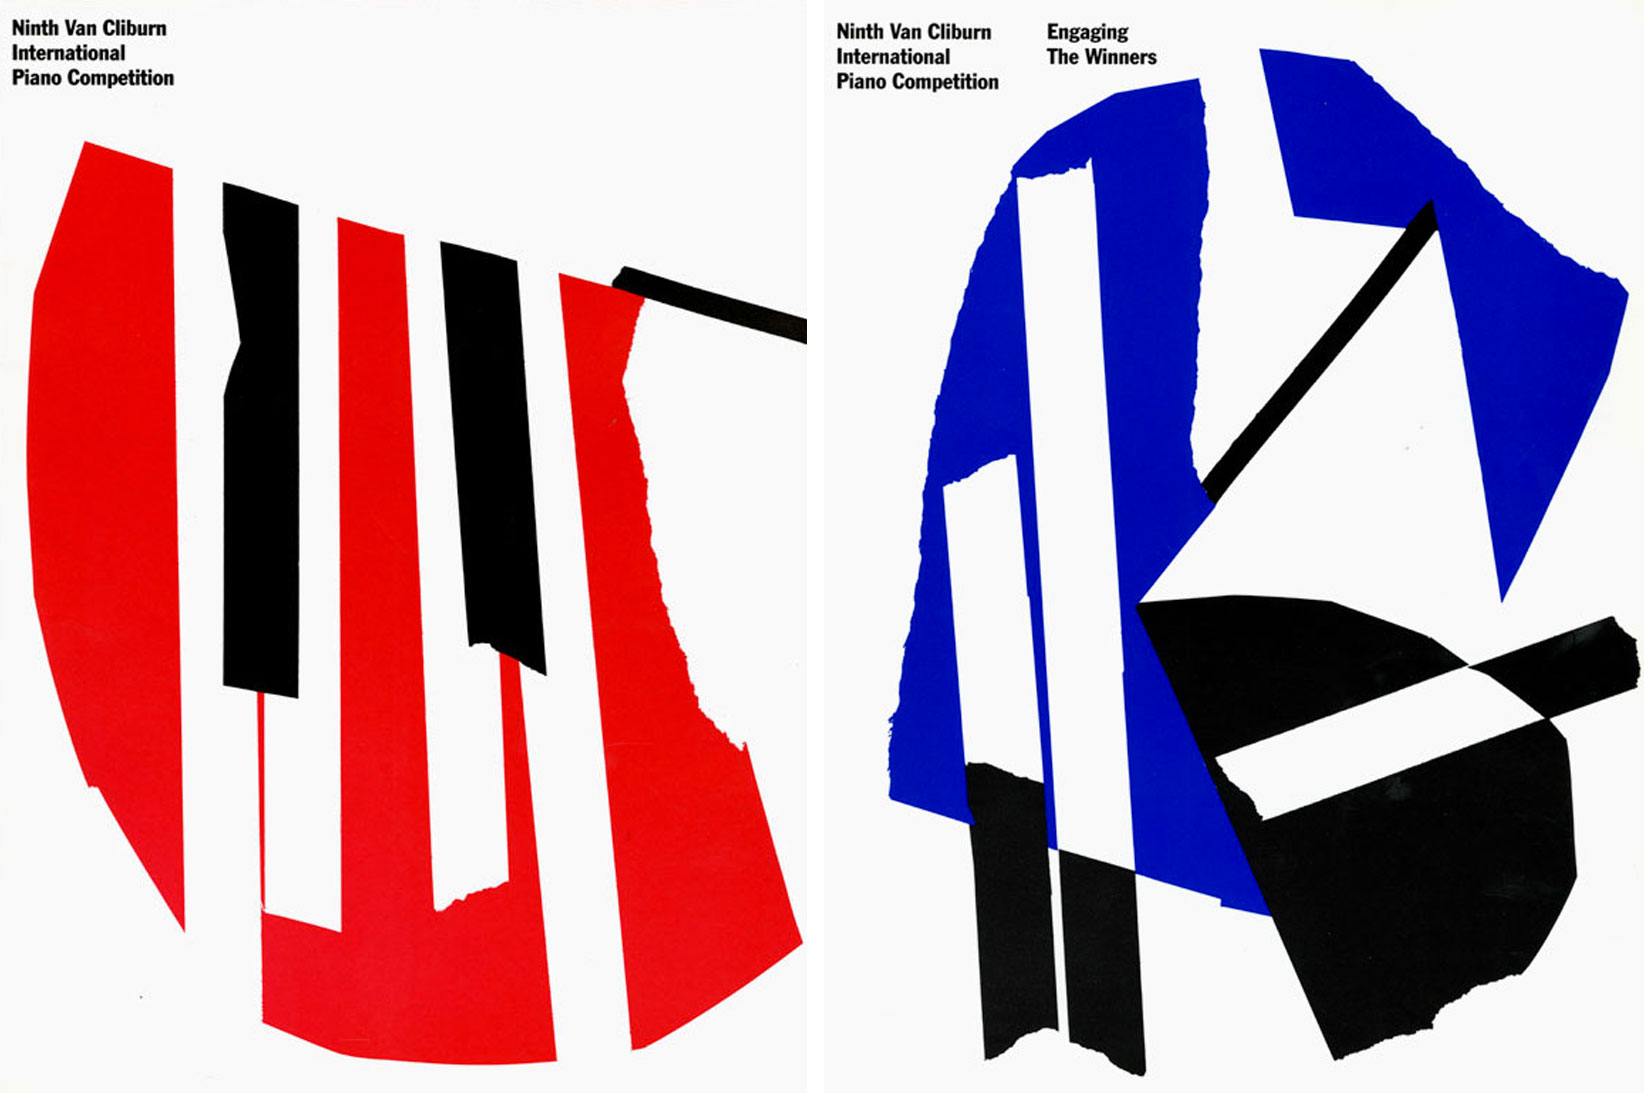 Chermayeff-and-Geismar-affiches-piano-competition-02